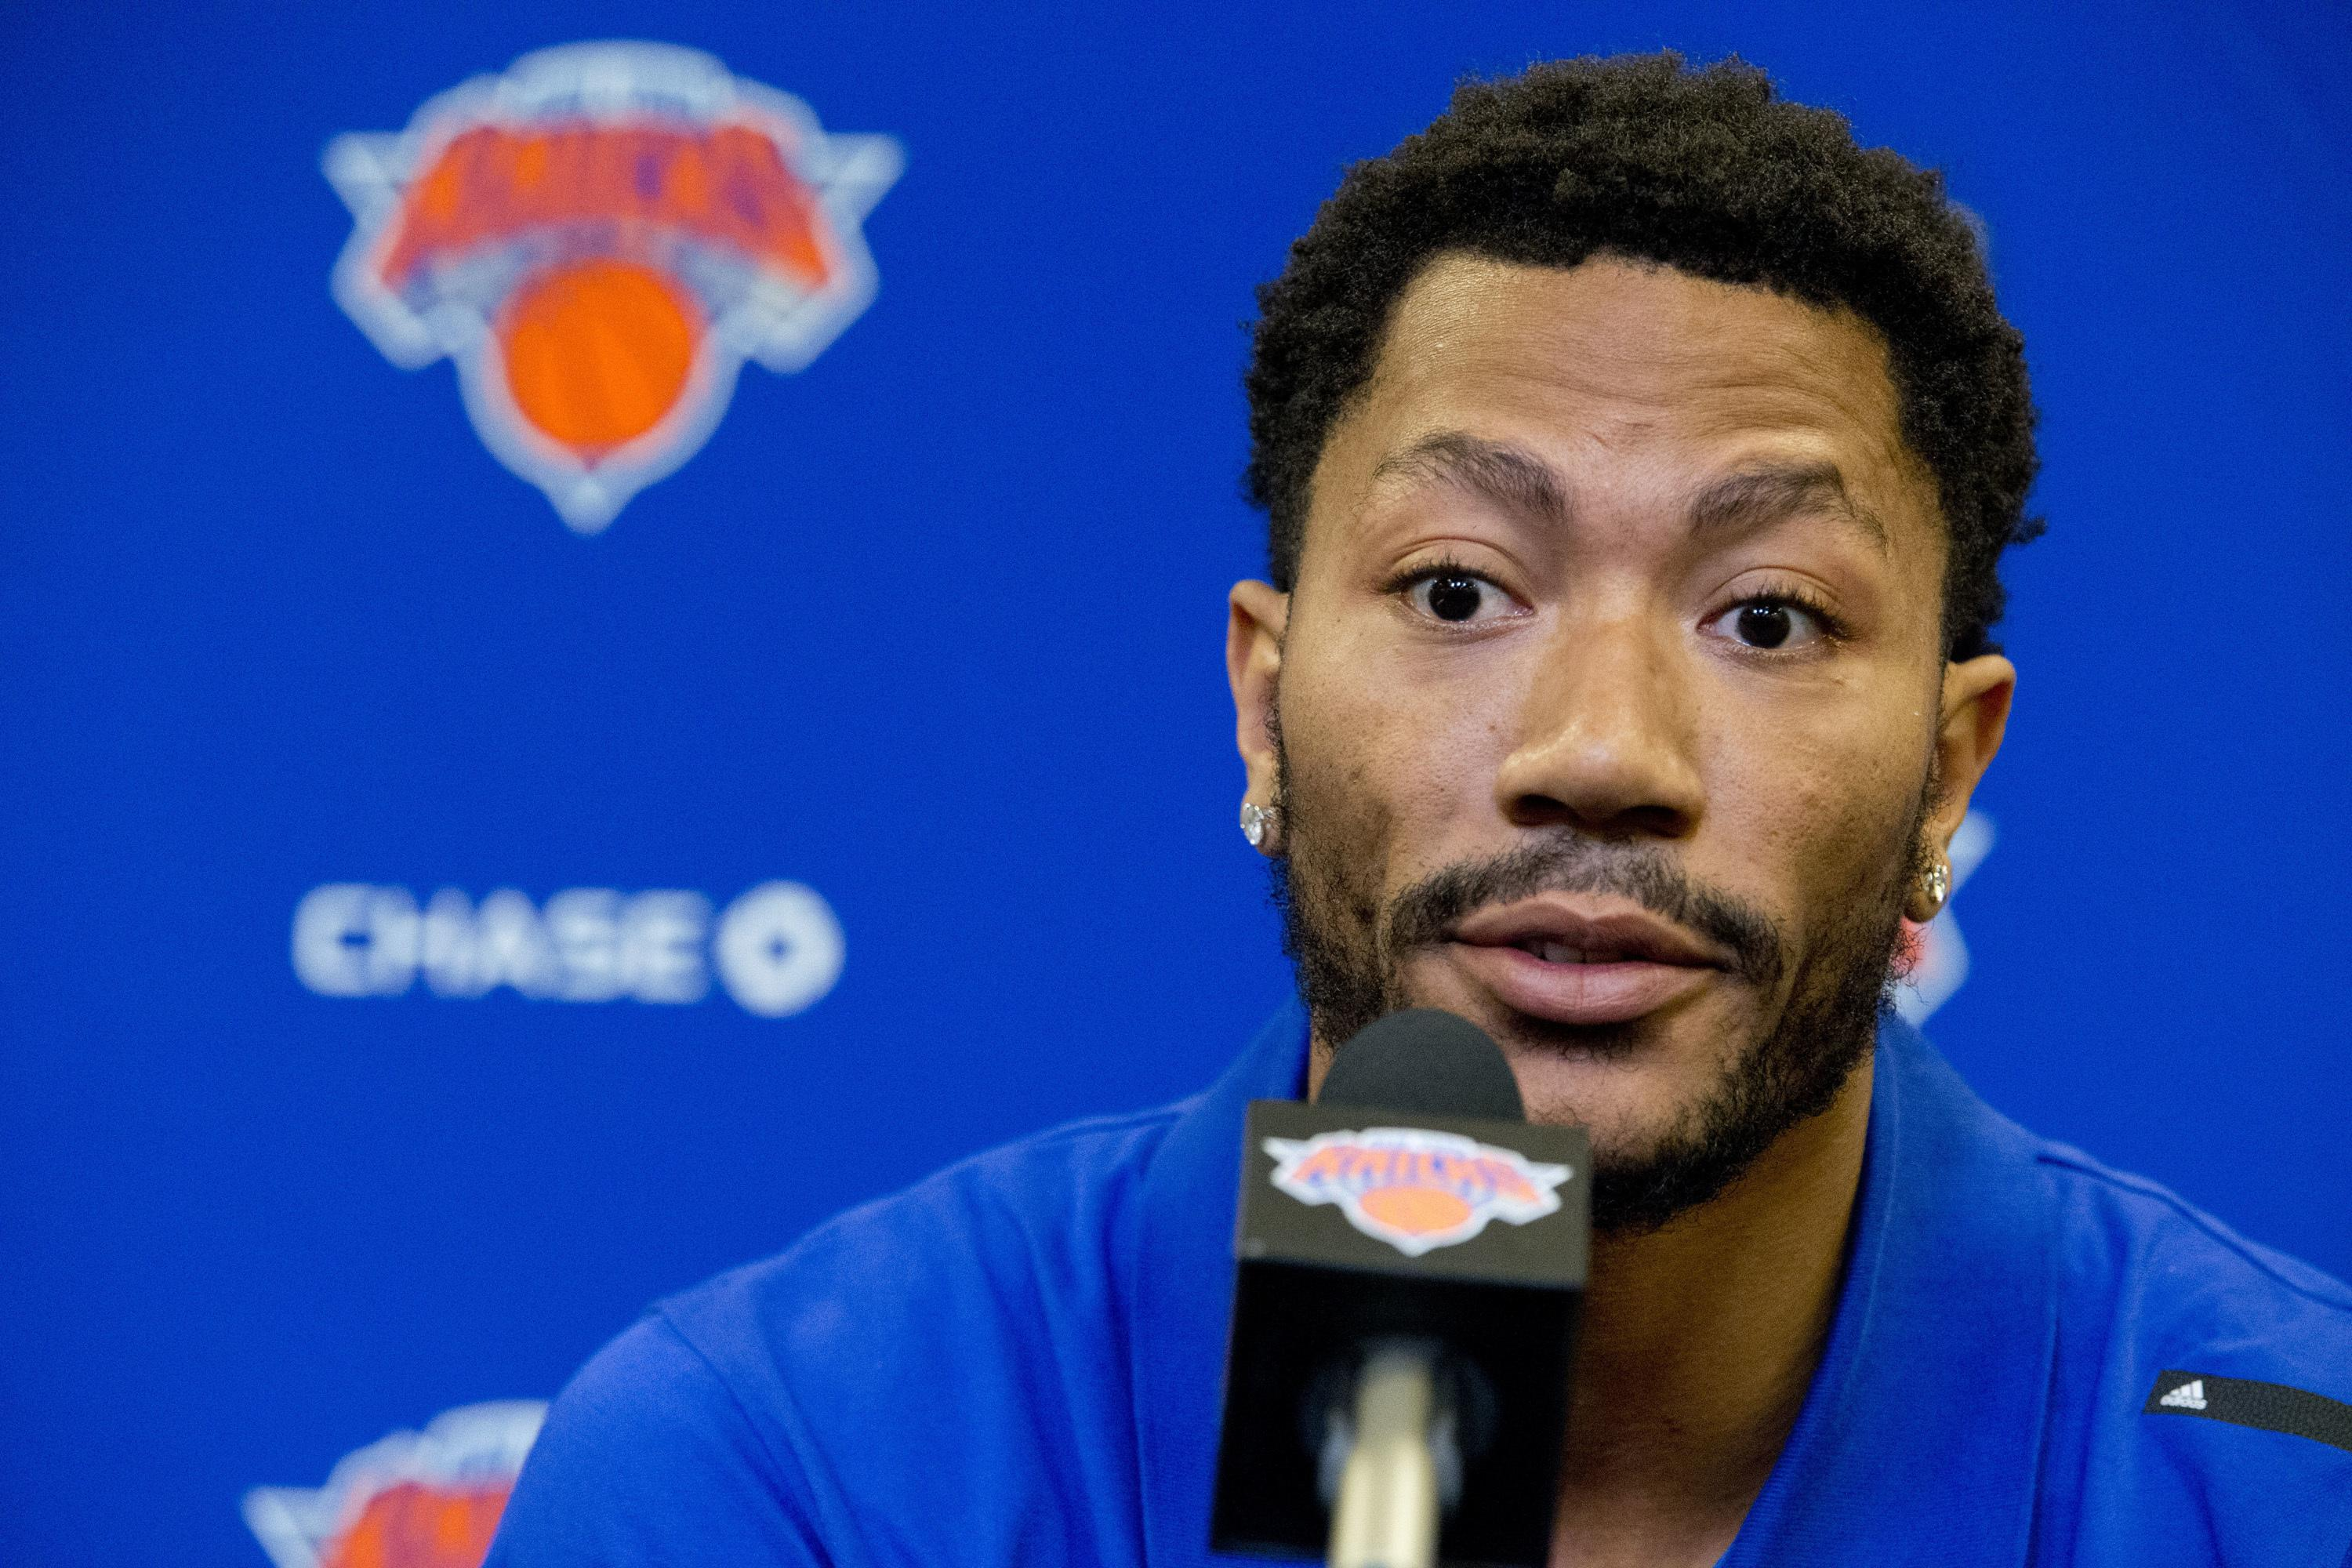 Derrick_rose_lawsuit_basketball